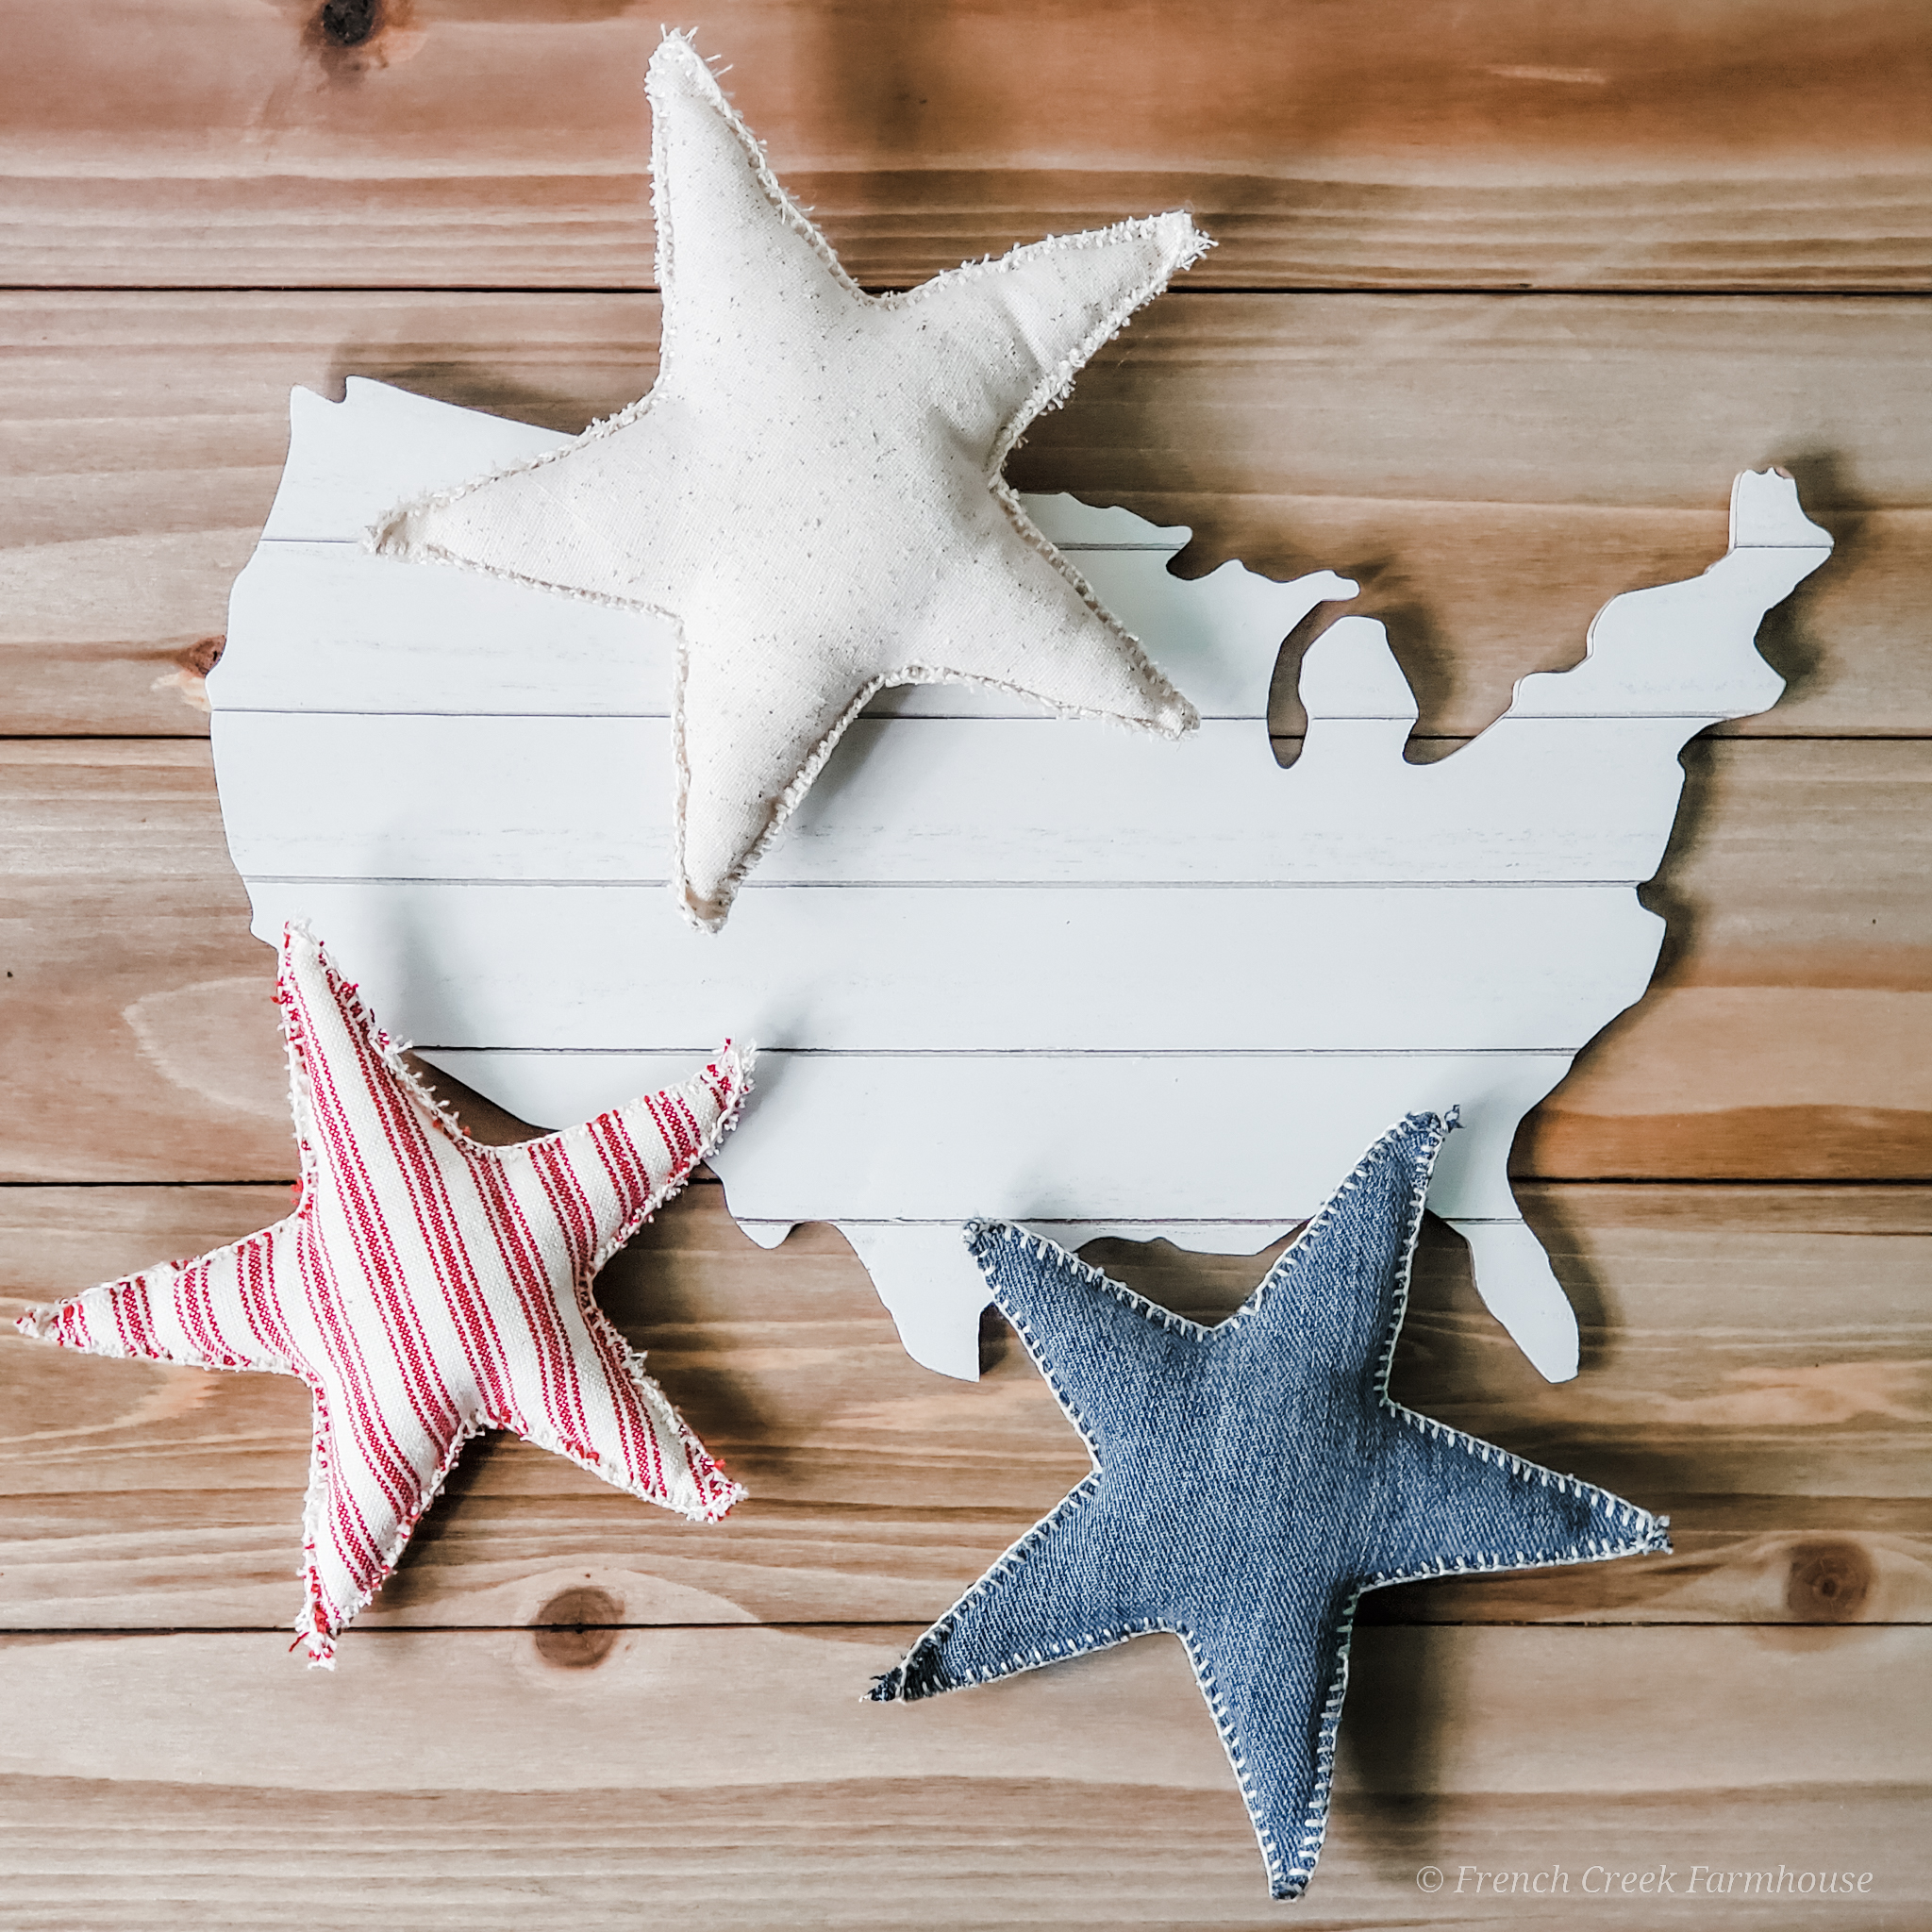 Make neutral decor for your farmhouse 4th of July